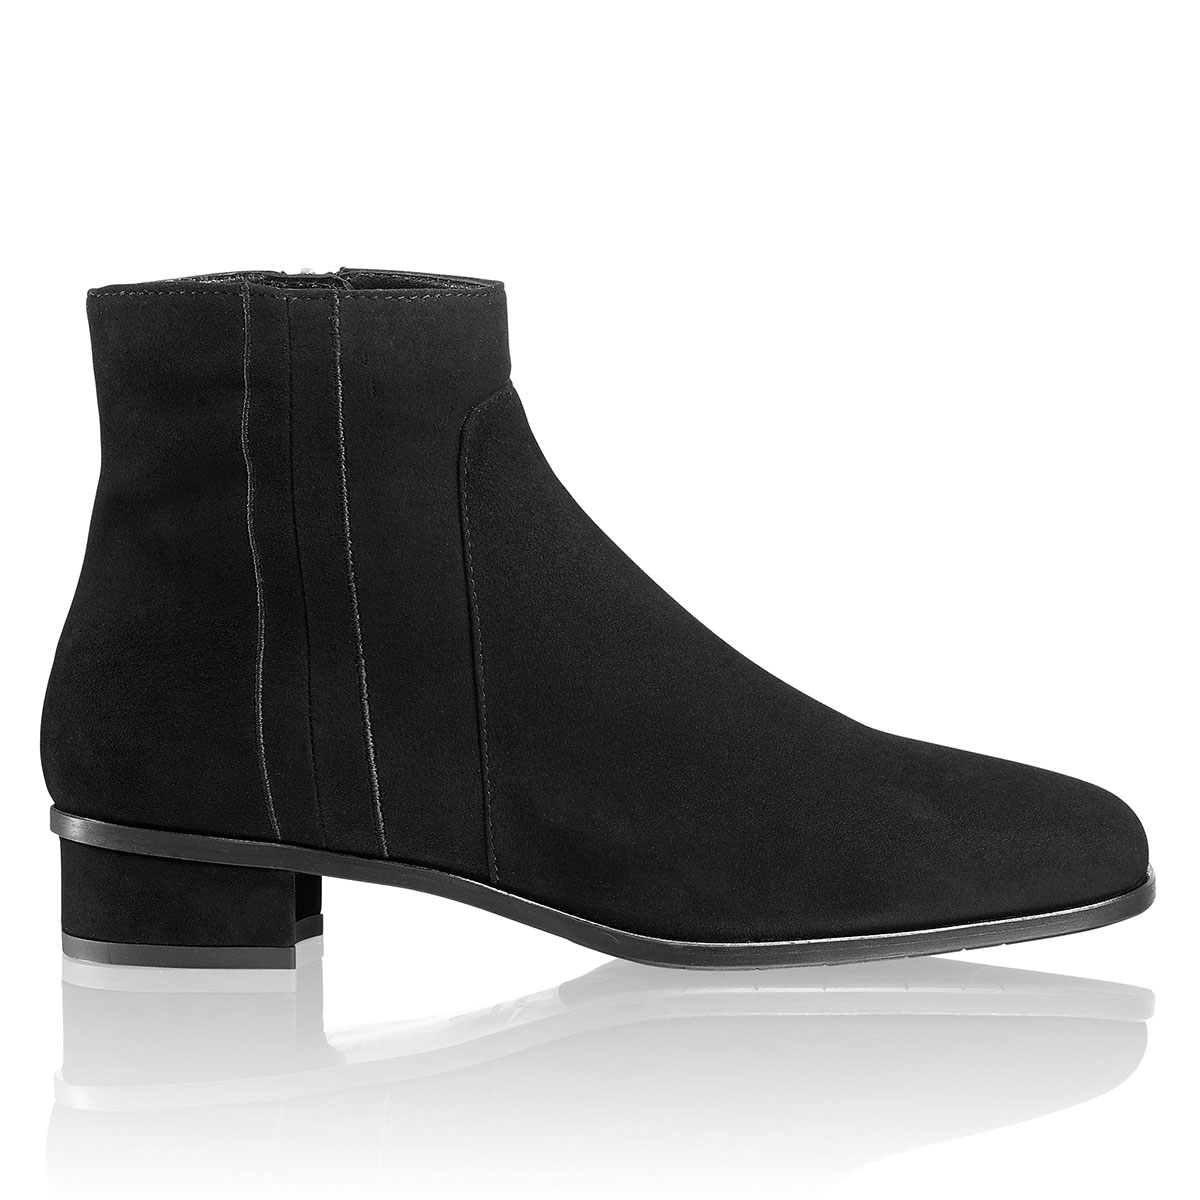 Russell and Bromley LUANNA DRY Ankle Boot